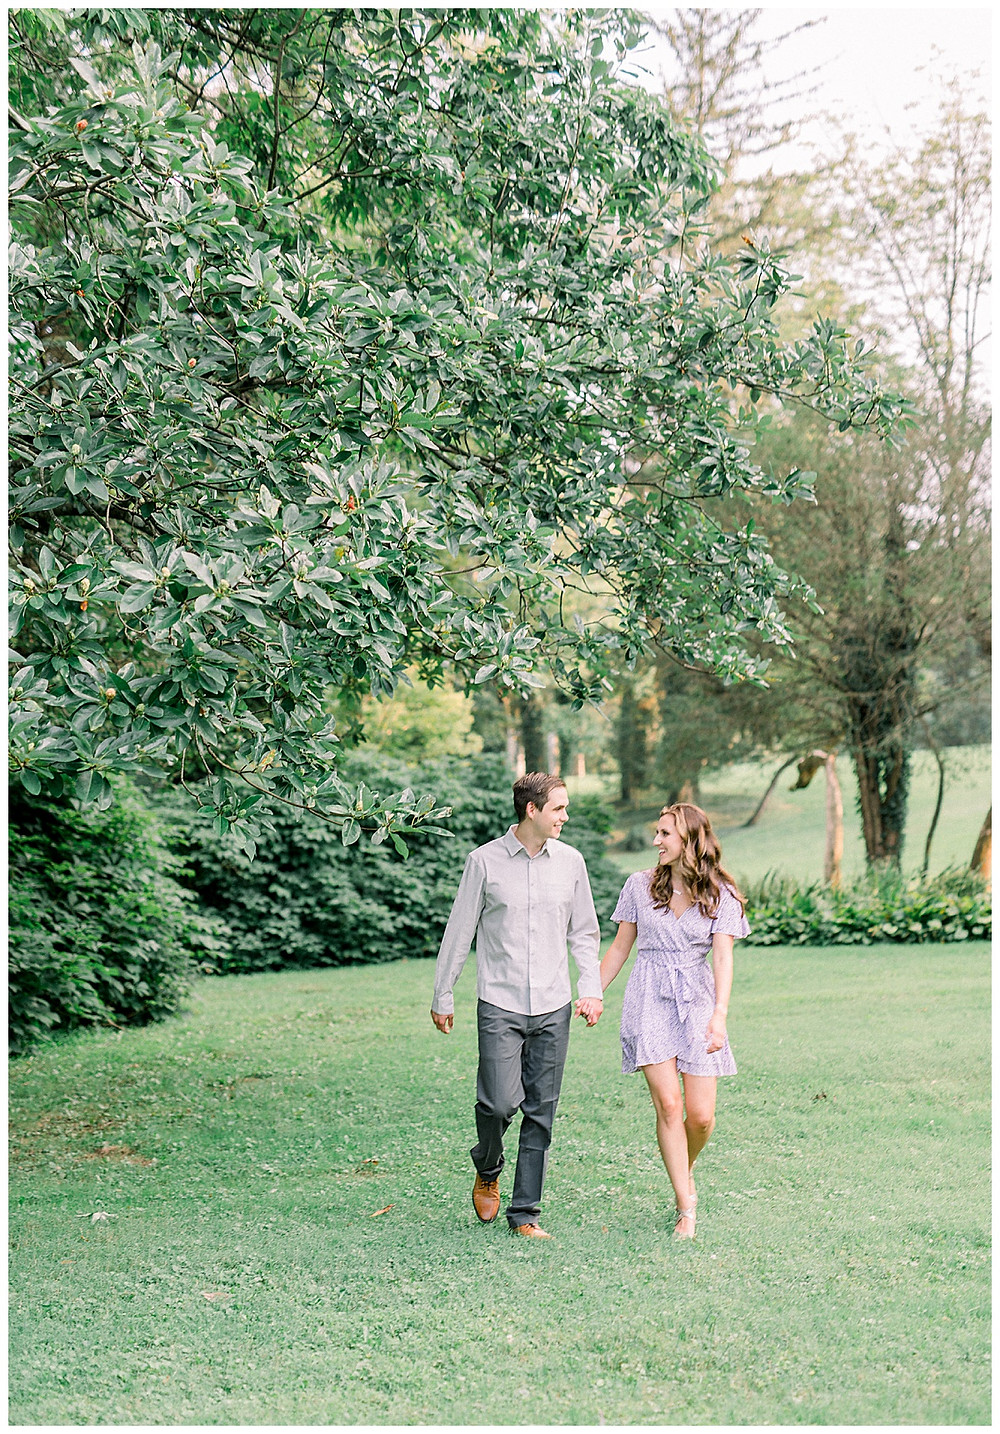 An engaged couple holding hands and walking through Historic Shady Lane